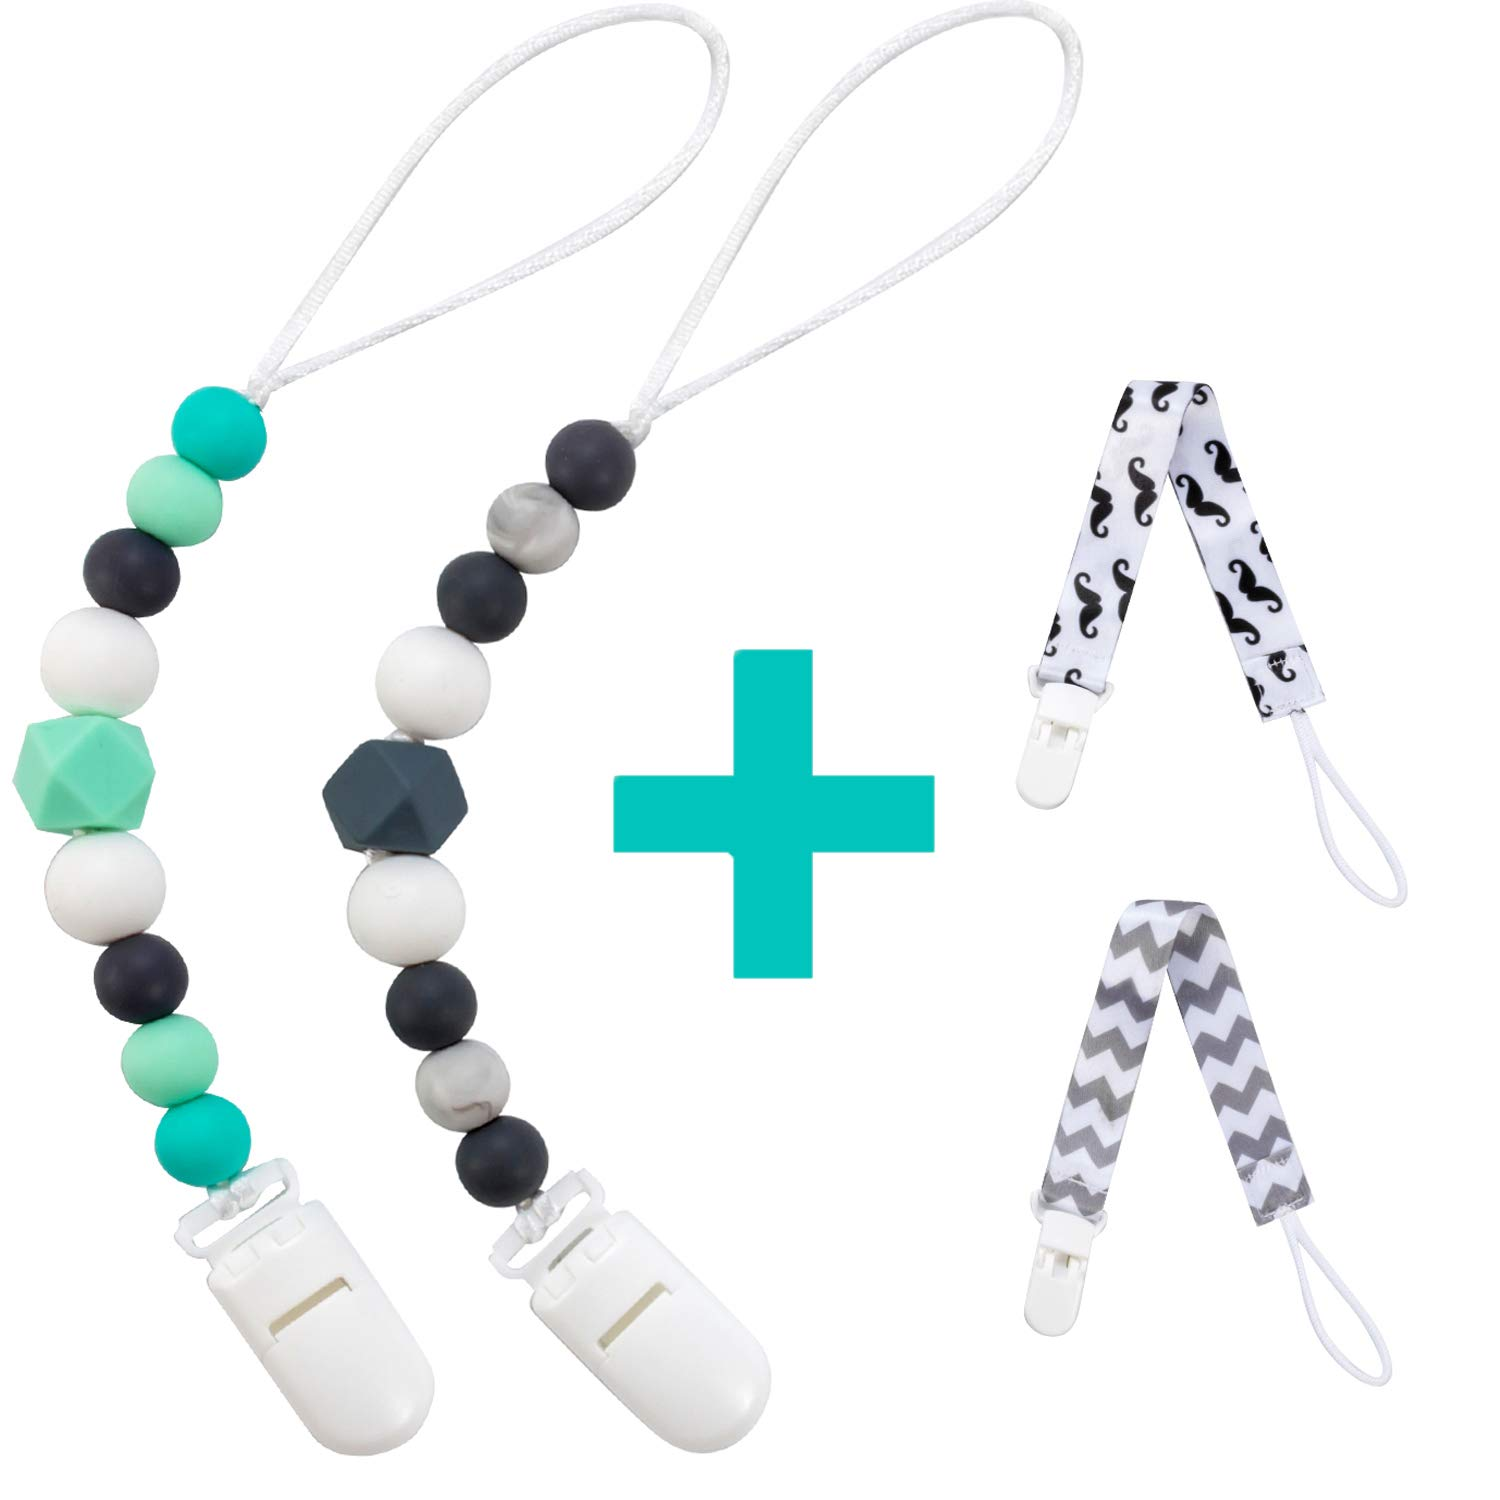 Silicone Pacifier Clip for Baby Boys & Girls, 4 Pack Paci Clips Teething Beads BPA Free Binky Holder for Teether Toys Birthday Baby Shower Gift (Green, Grey)